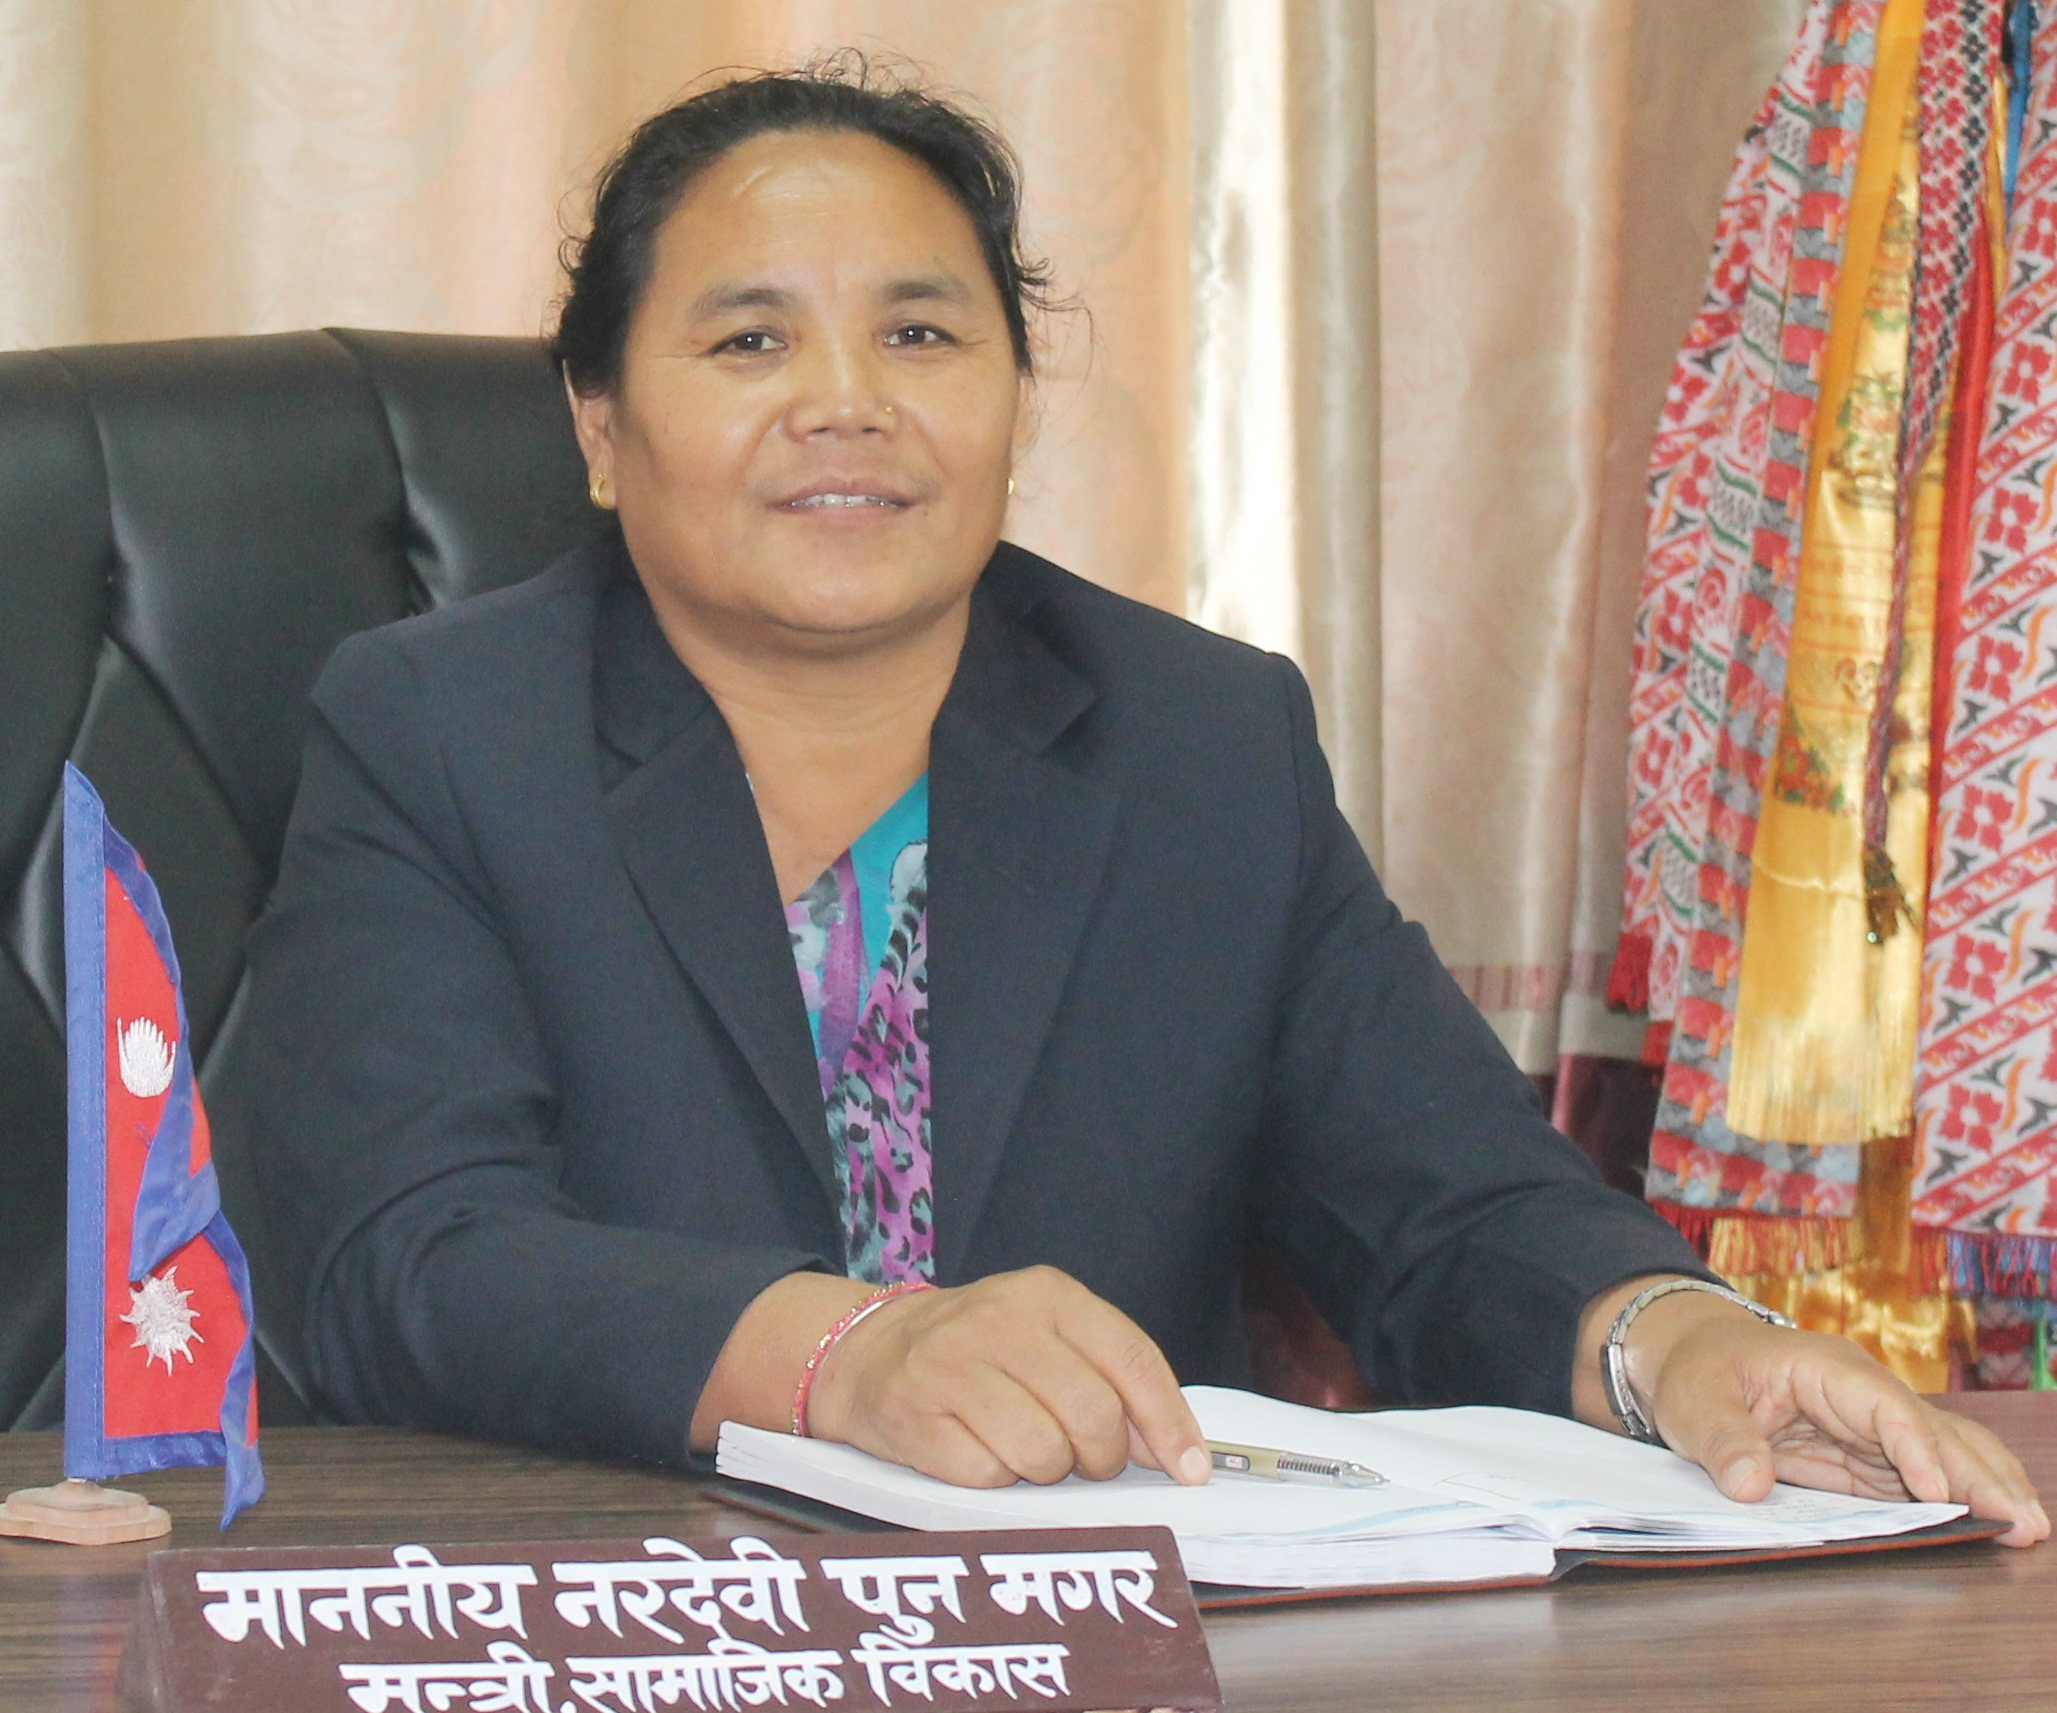 Honorable Minister Ministry of Social Development, Gandaki